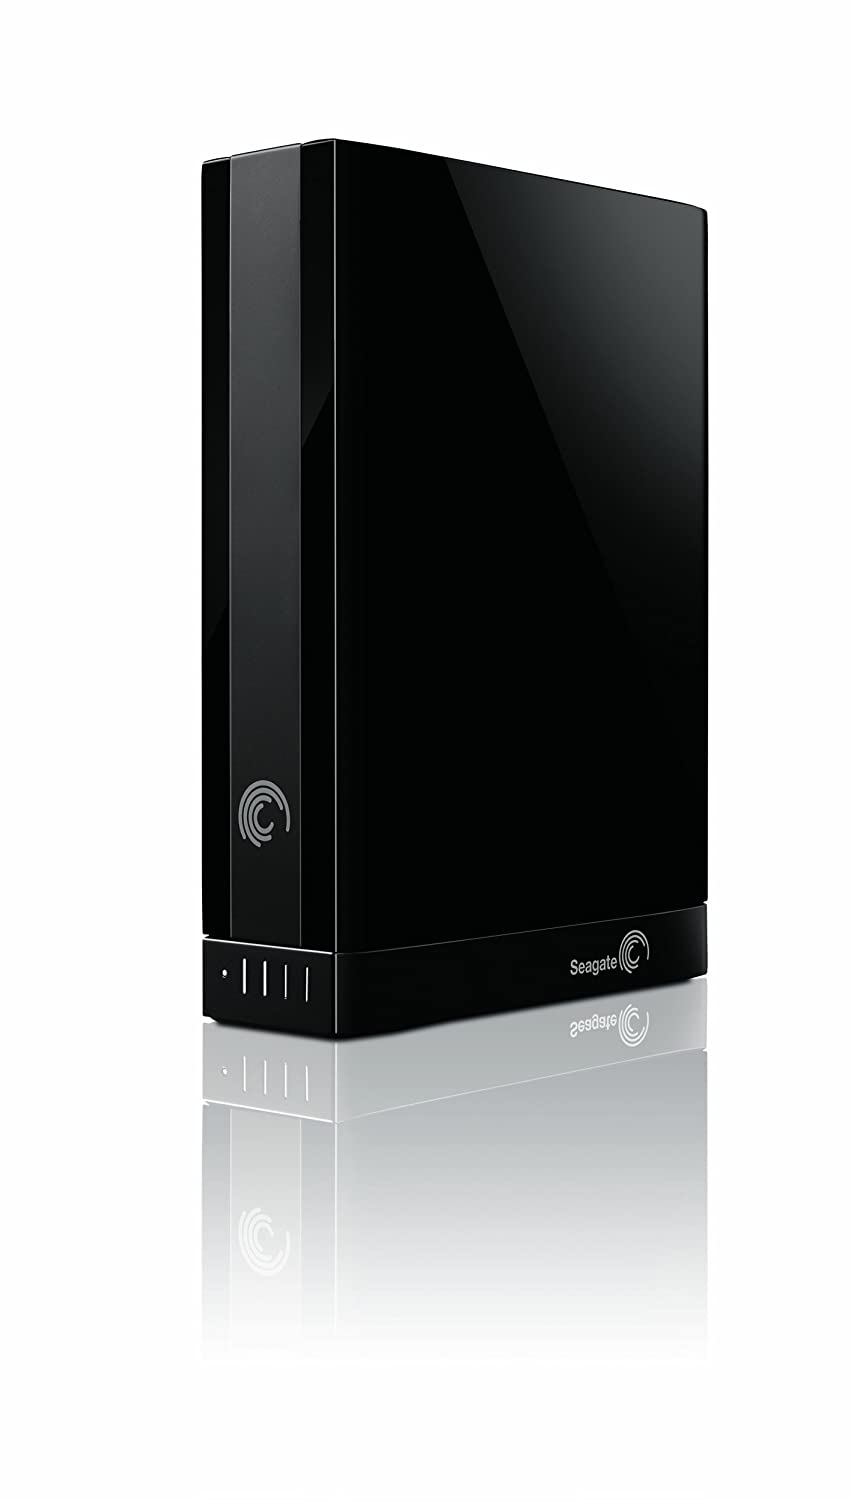 Seagate Backup Plus 4 TB USB 3.0 Desktop External Hard Drive $139.99